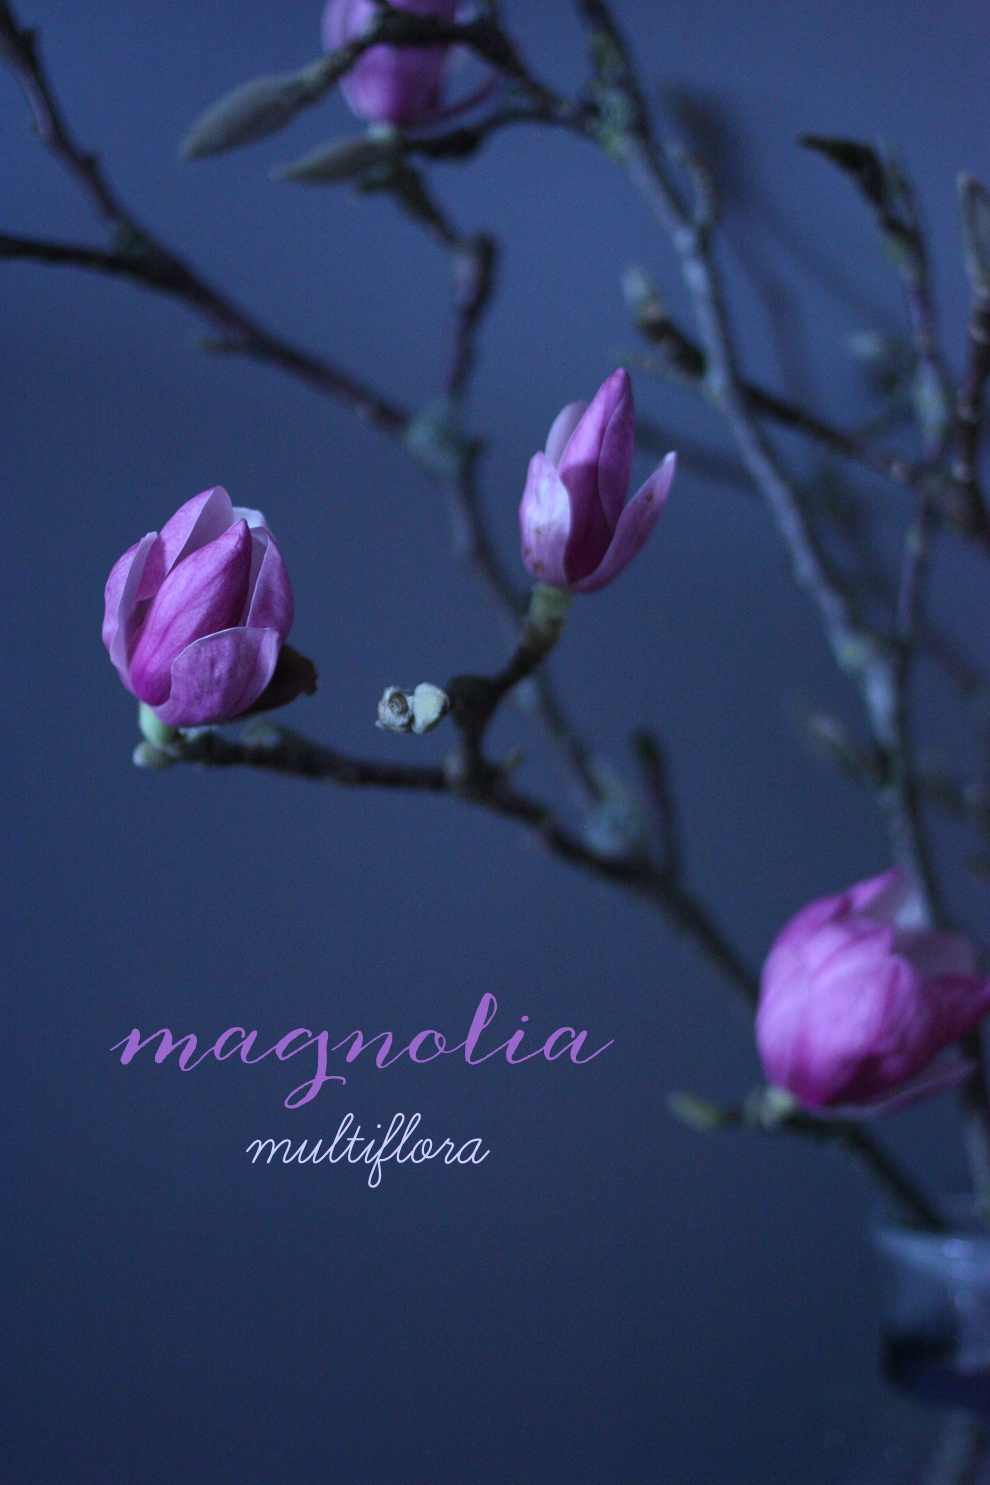 Magnolia_multiflora_blog